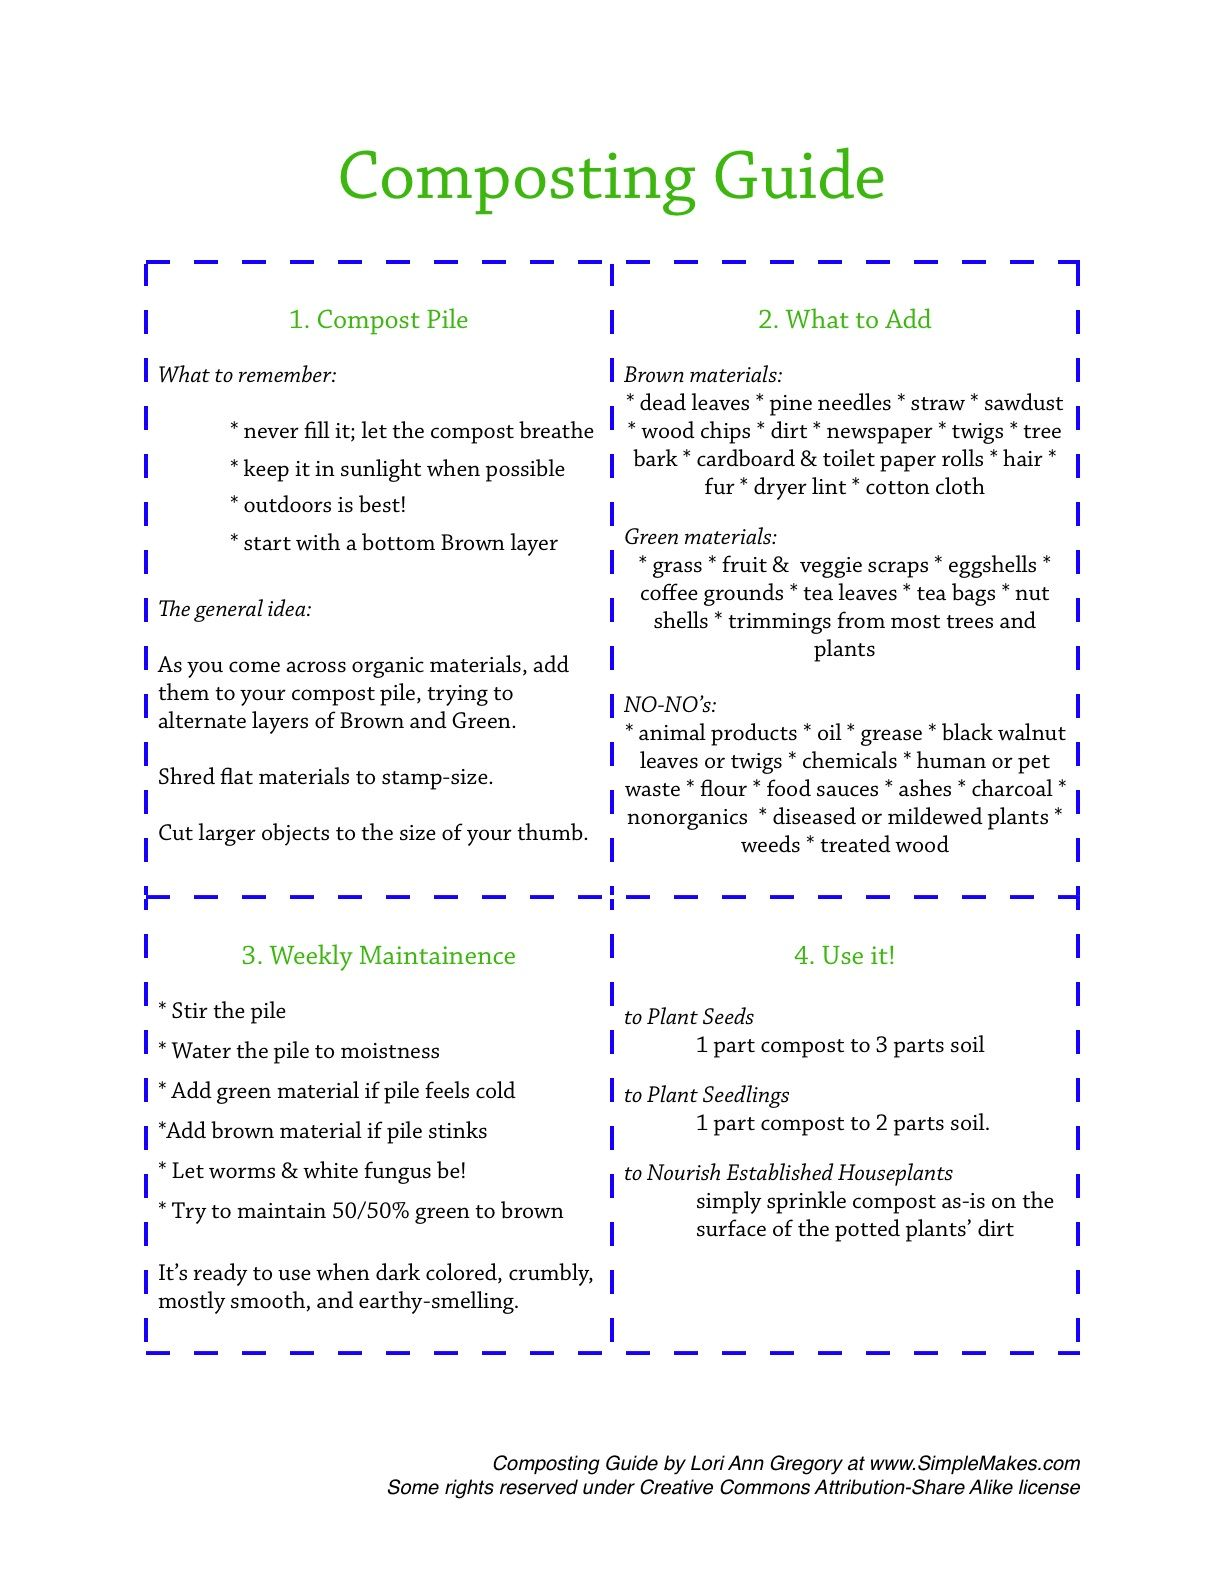 printable composting guide outdoors plants gardens pinterest